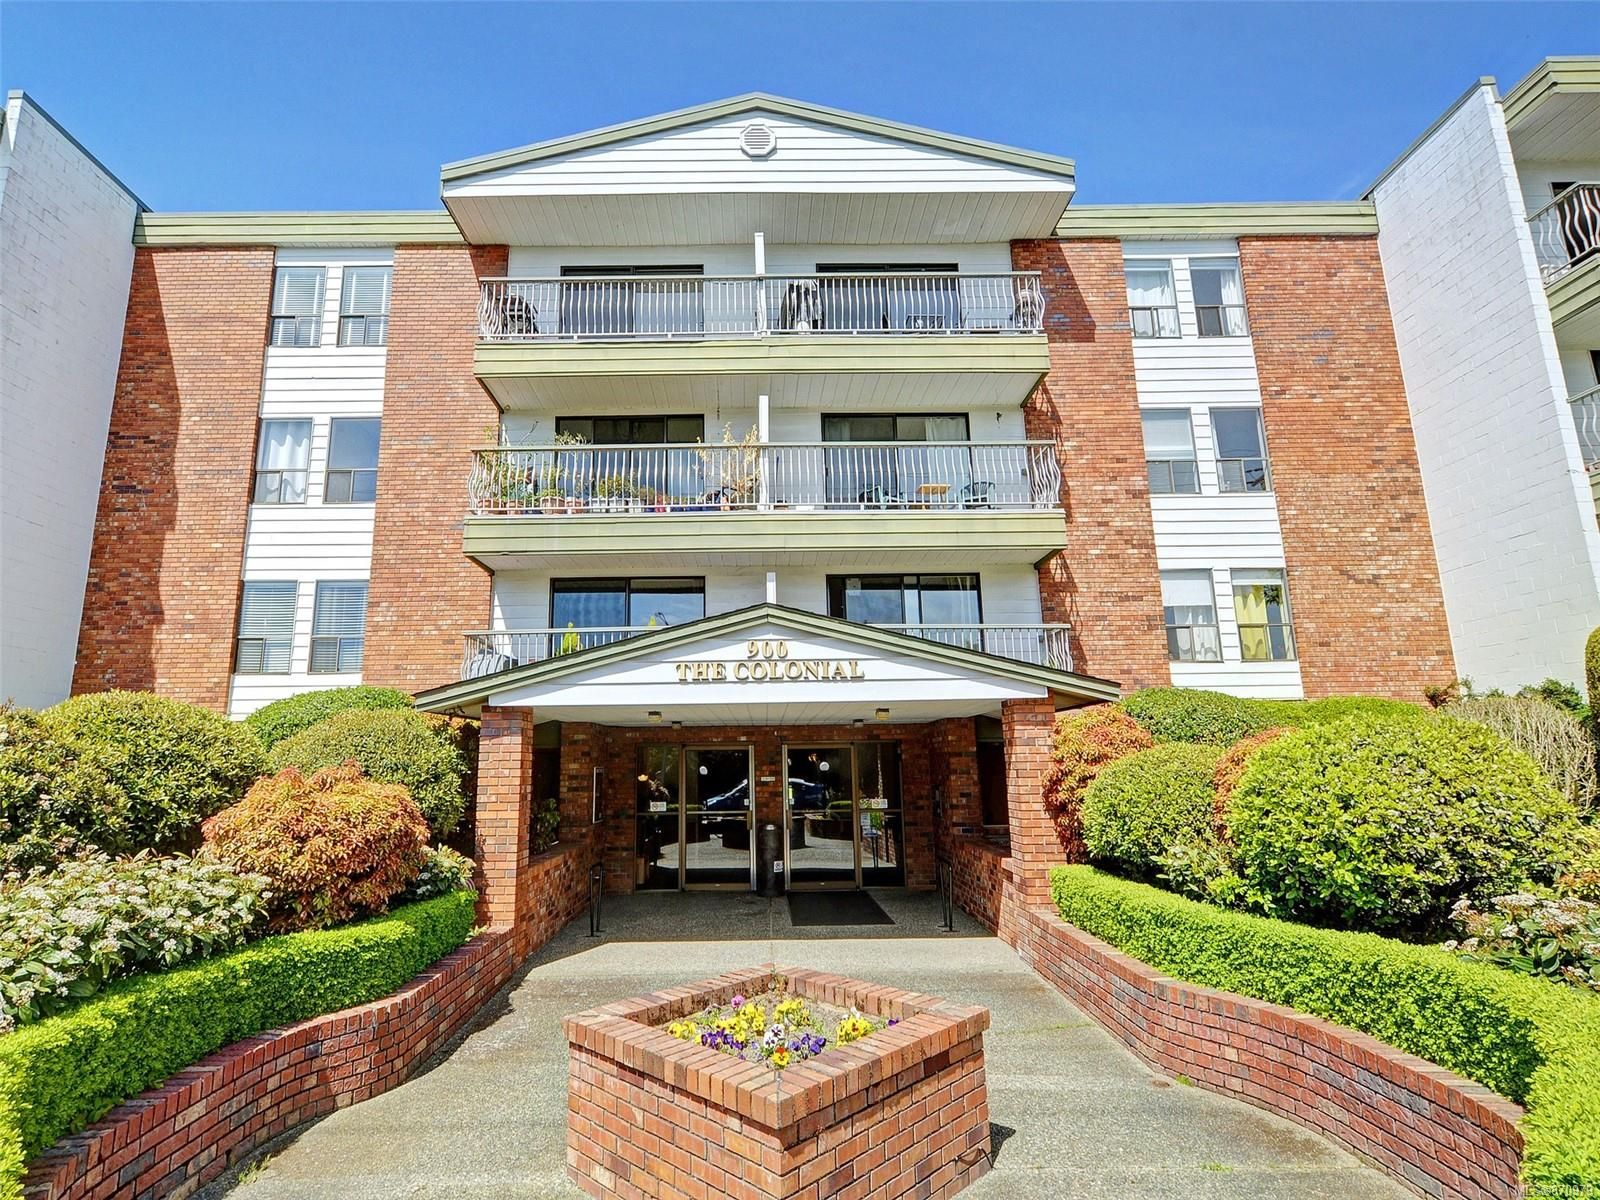 Main Photo: 404 900 Tolmie Ave in : SE Quadra Condo for sale (Saanich East)  : MLS®# 870979